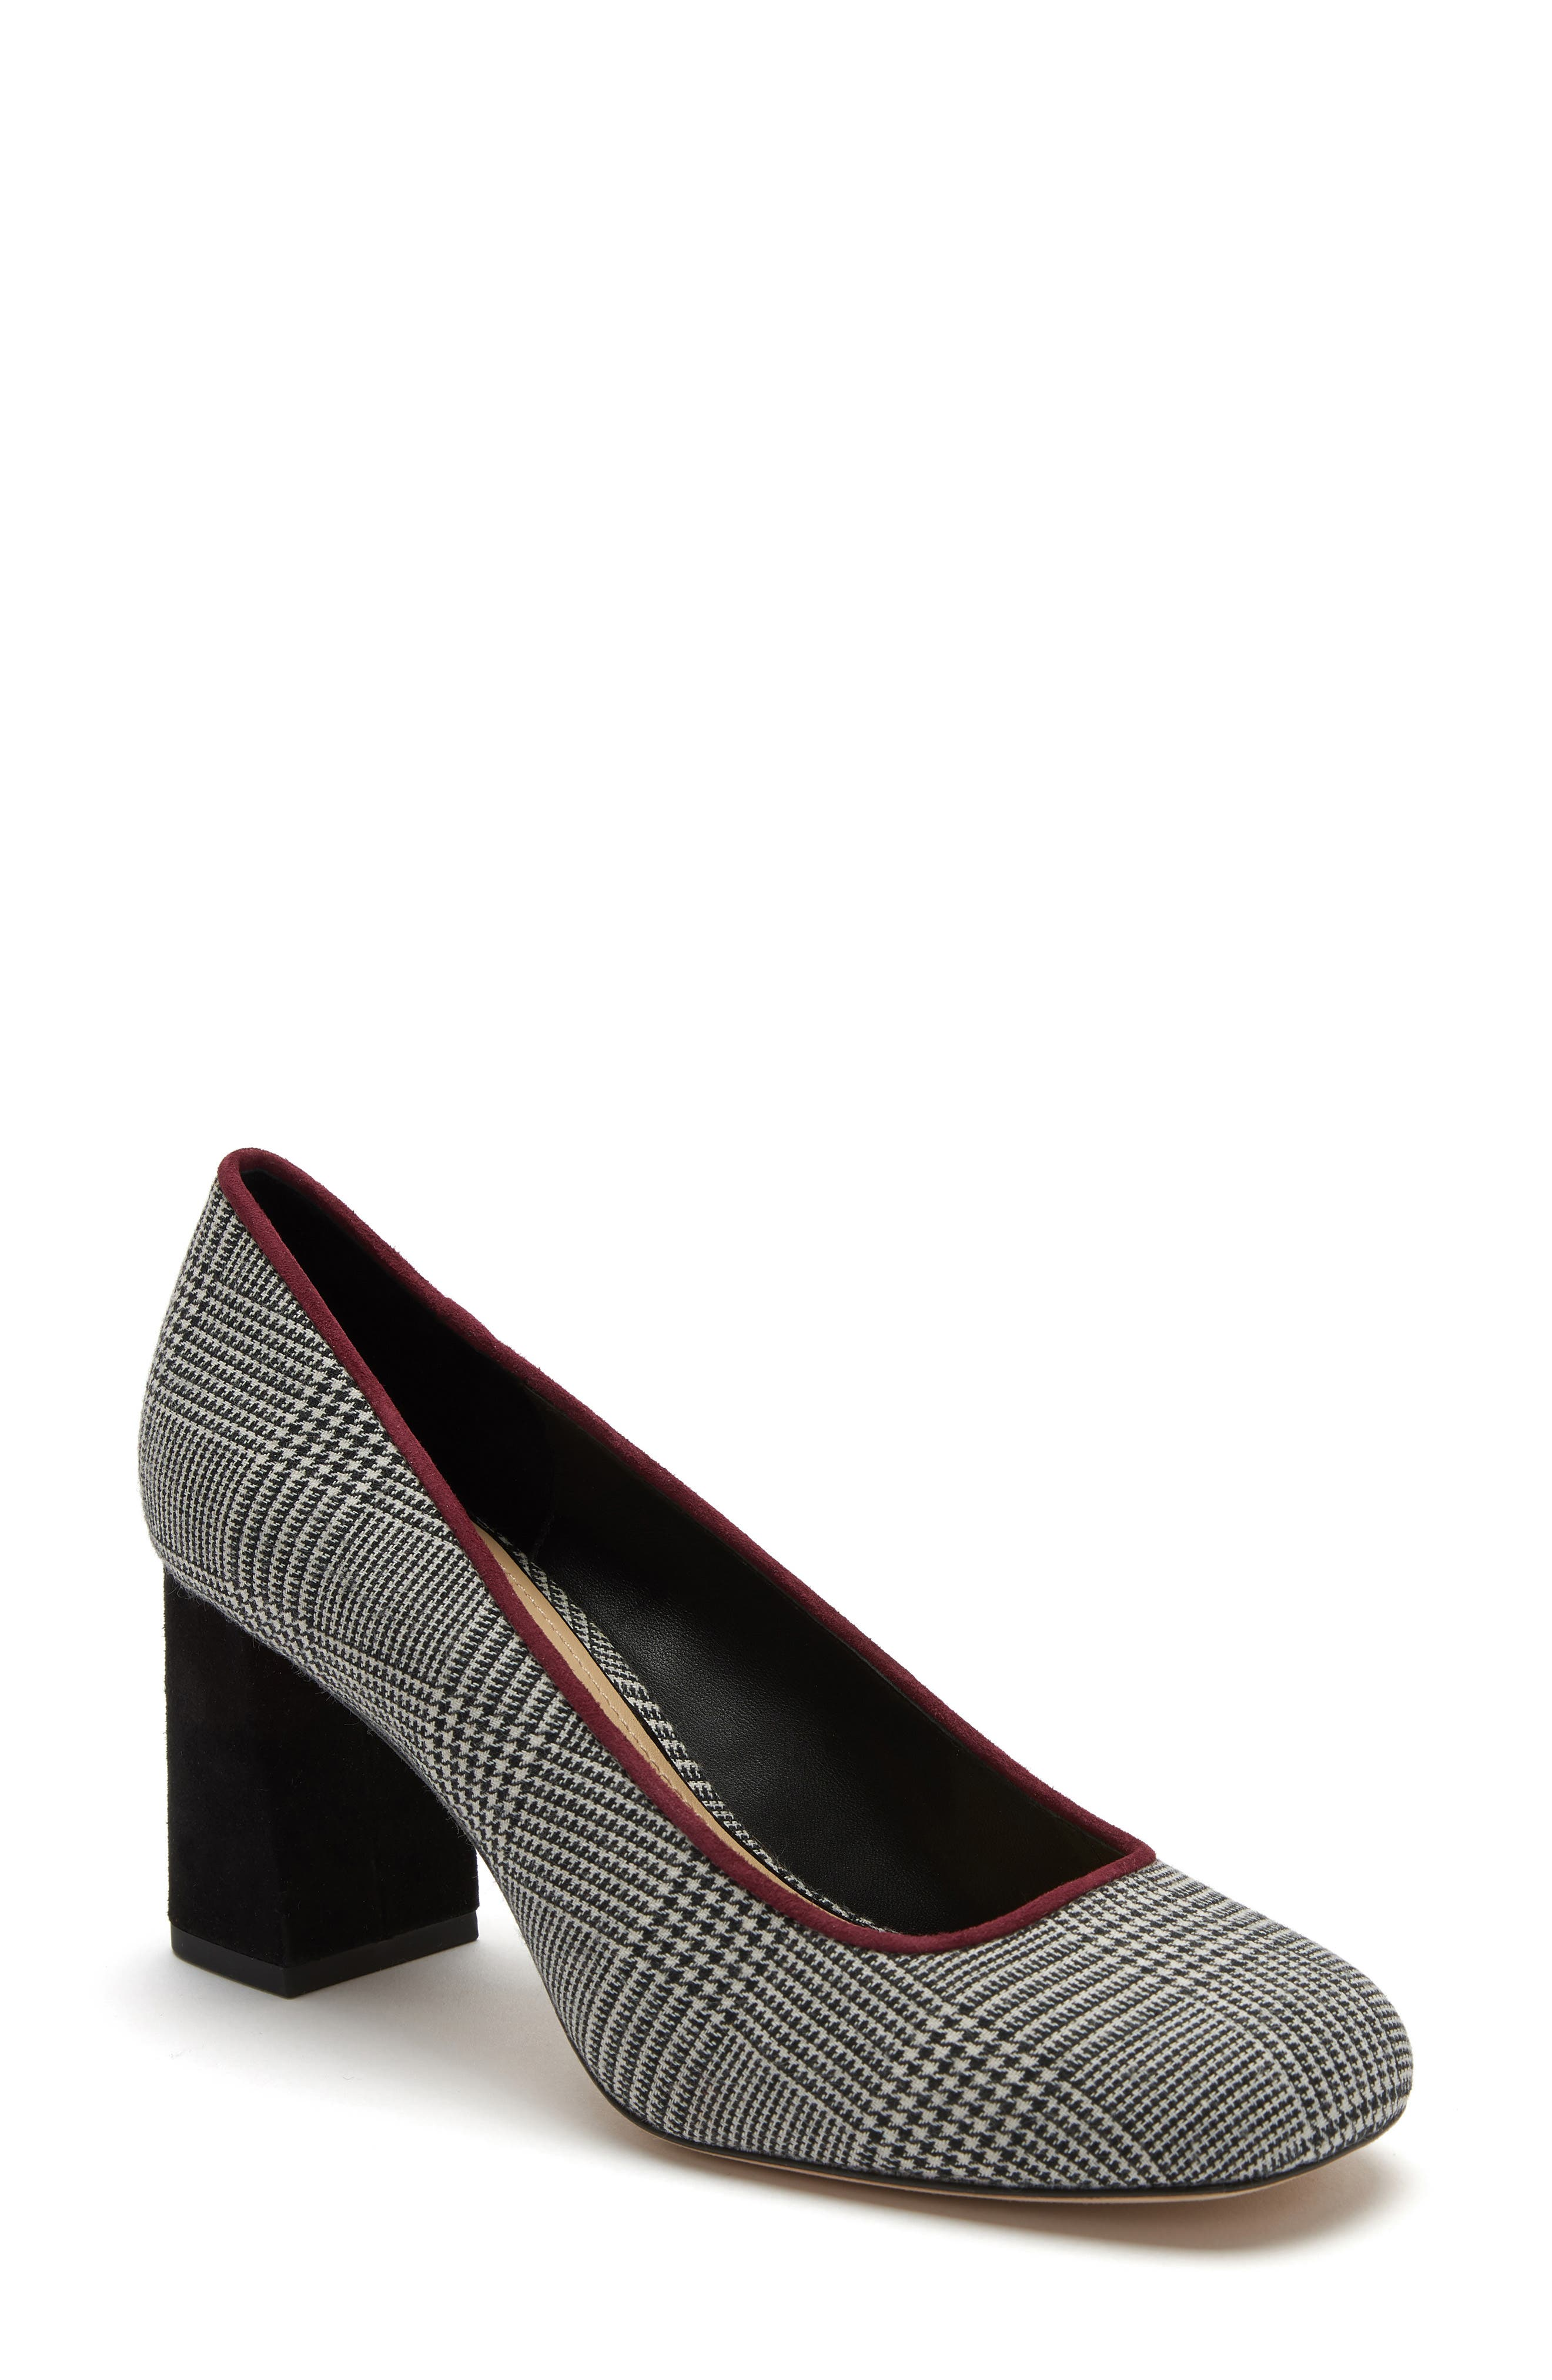 ETIENNE AIGNER Dylan Square Toe Pump in Black/ White Plaid